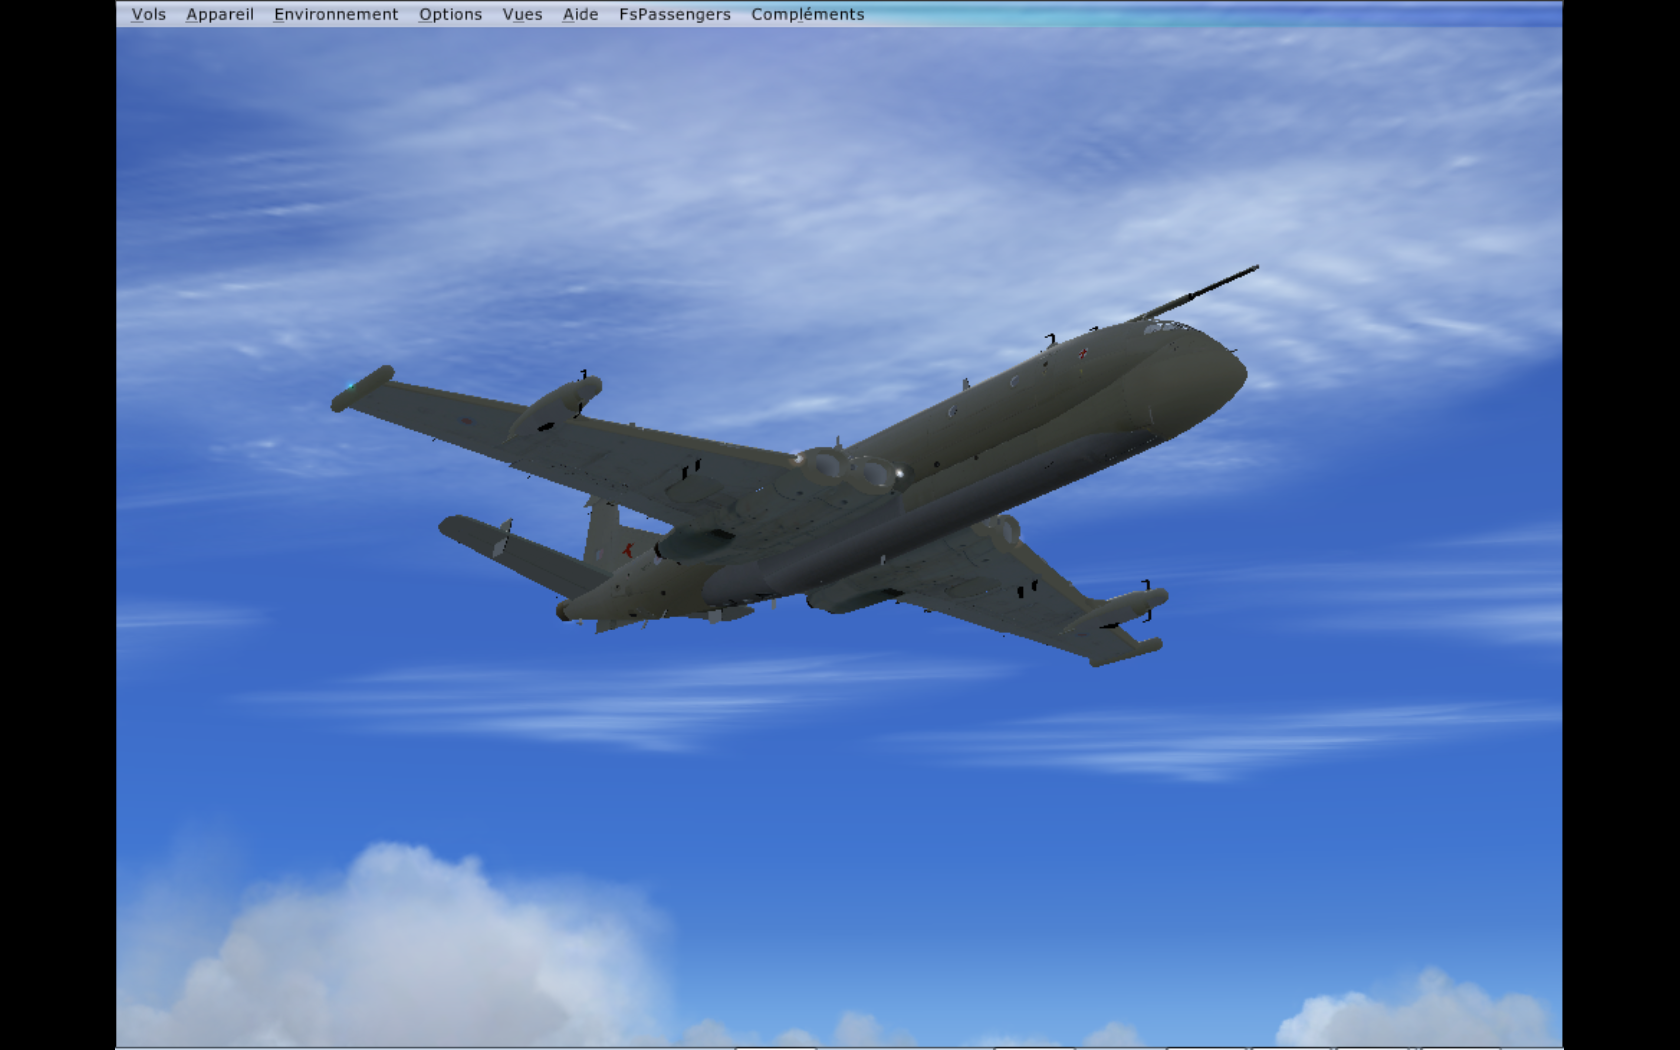 photo fsx.png